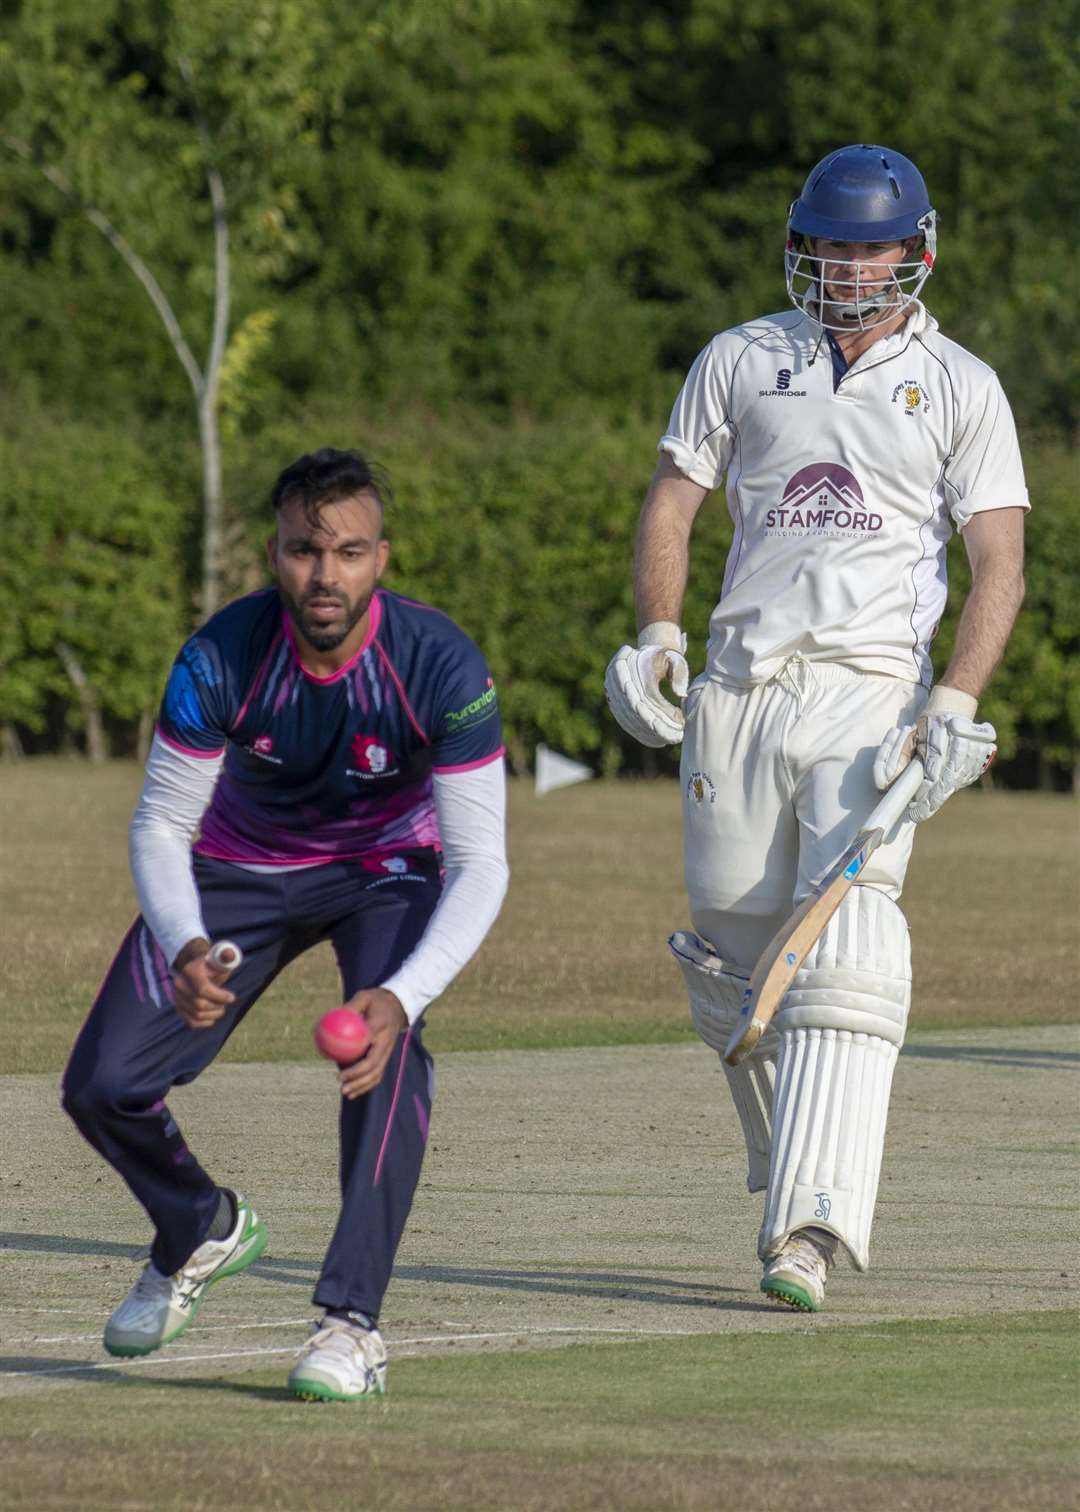 Rutland T20 semi-finals night. Photo: Lee Hellwing (3096300)